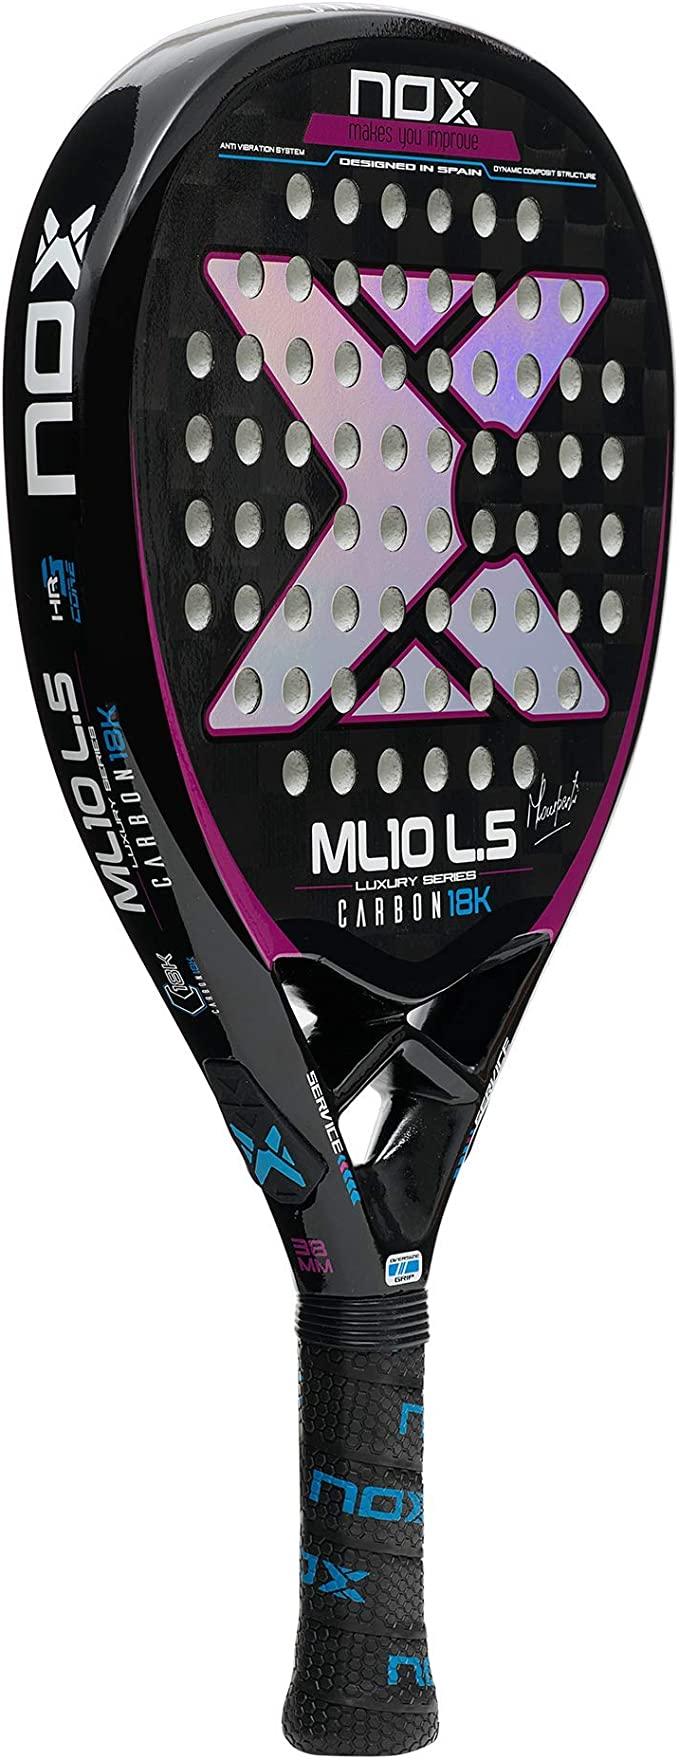 NOX Pala de pádel ML10 Luxury L.5 Carbon 18K by Miguel Lamperti ...